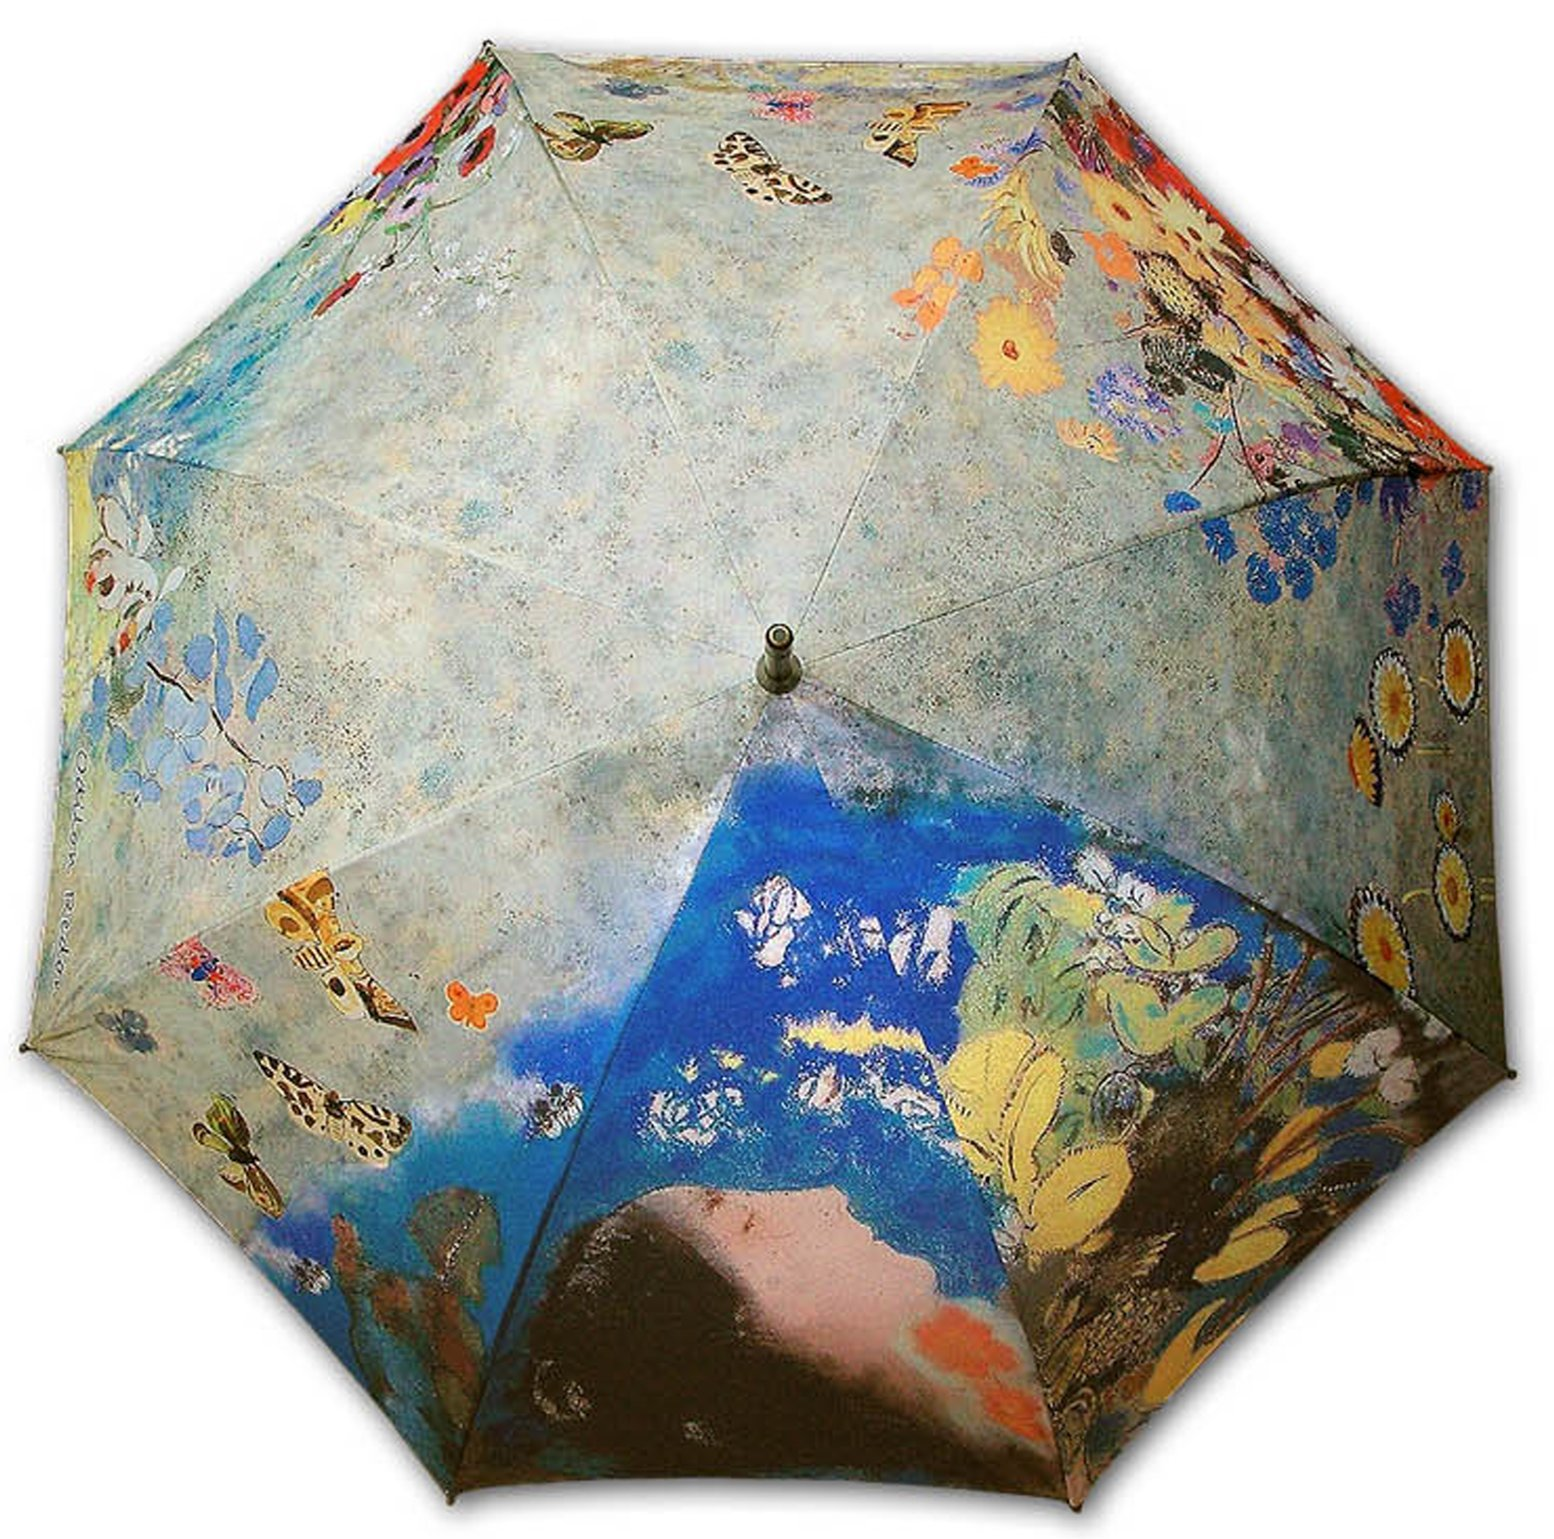 Goldenpiece Redon Ophelia printing long auto umbrella portable precious package